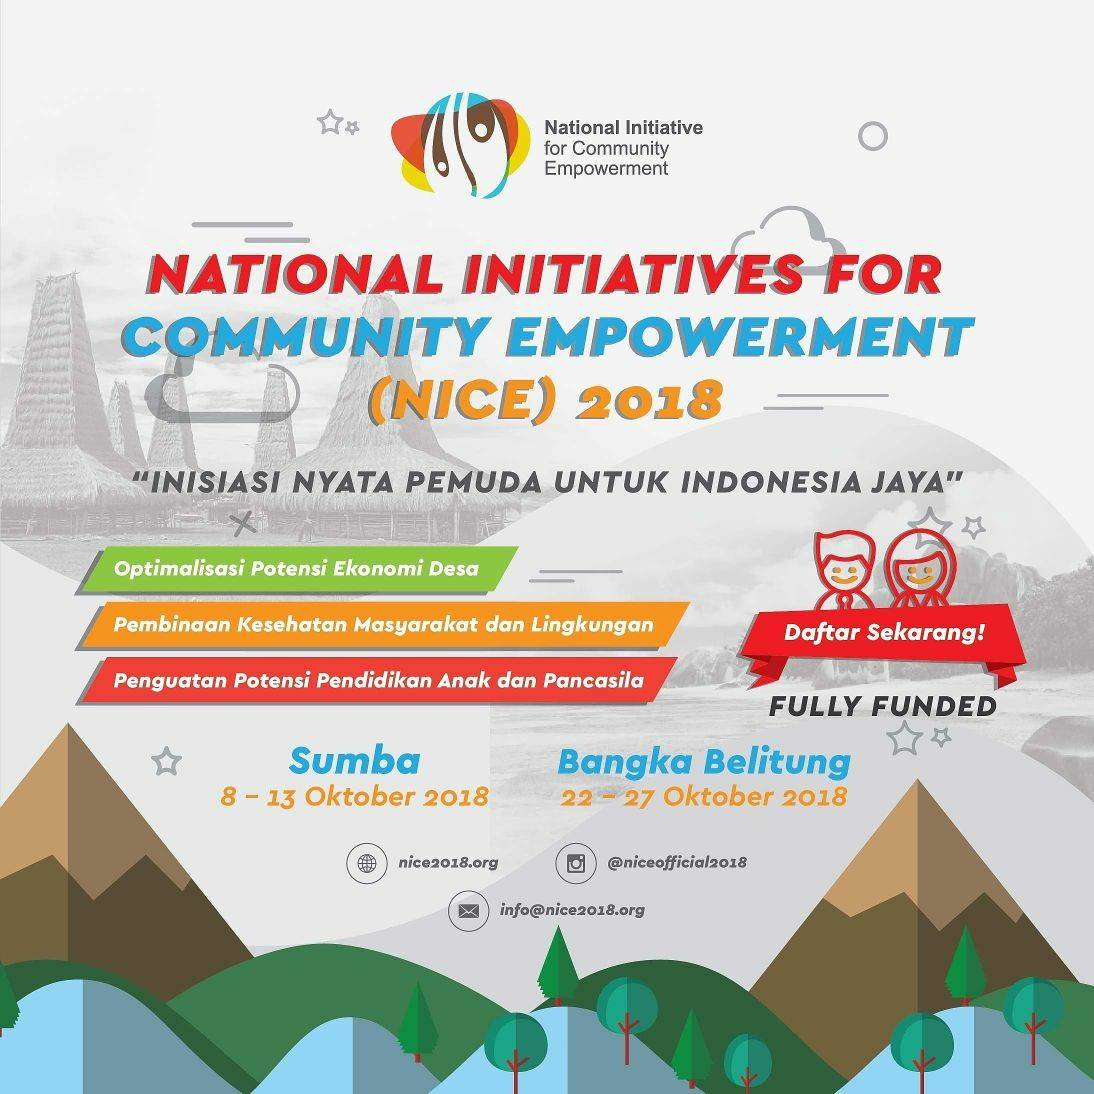 National Initiatives for Community Empowerment (NICE) 2018